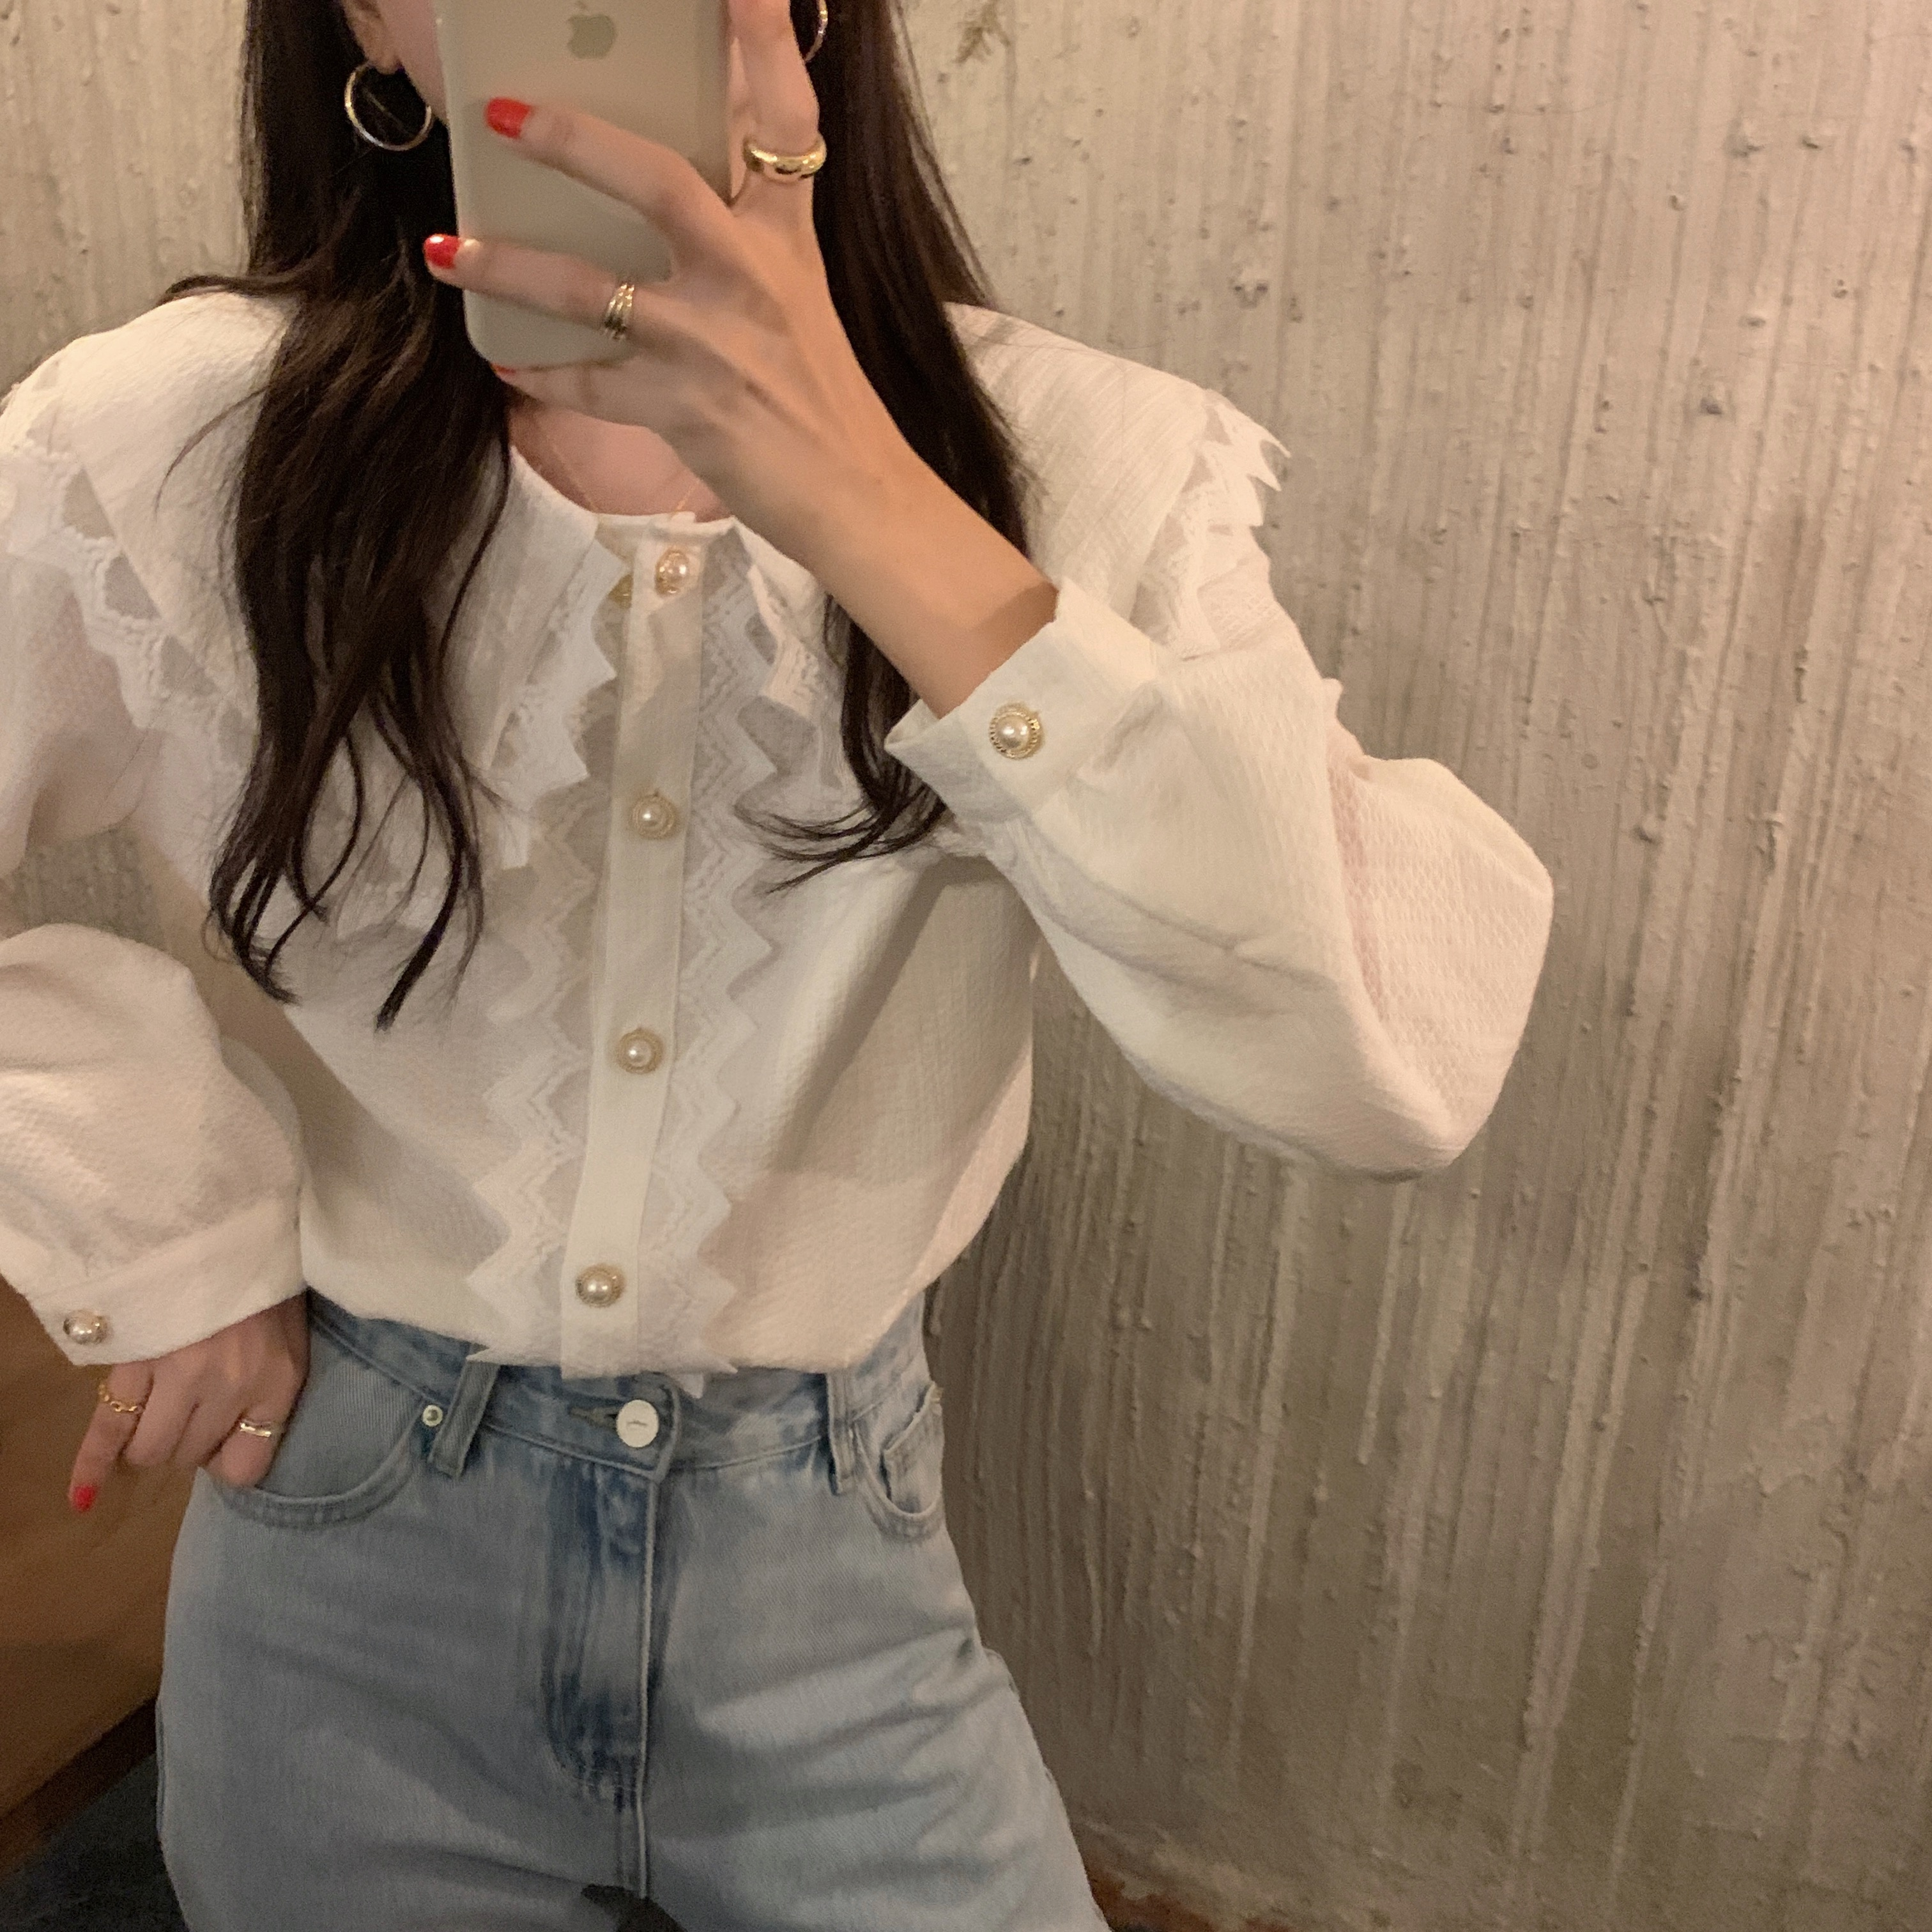 H16a3efbaf853493eaf39c5c5e0598564v - Spring / Autumn Big Lapel Collar Long Sleeves Lace Buttons Solid Blouse